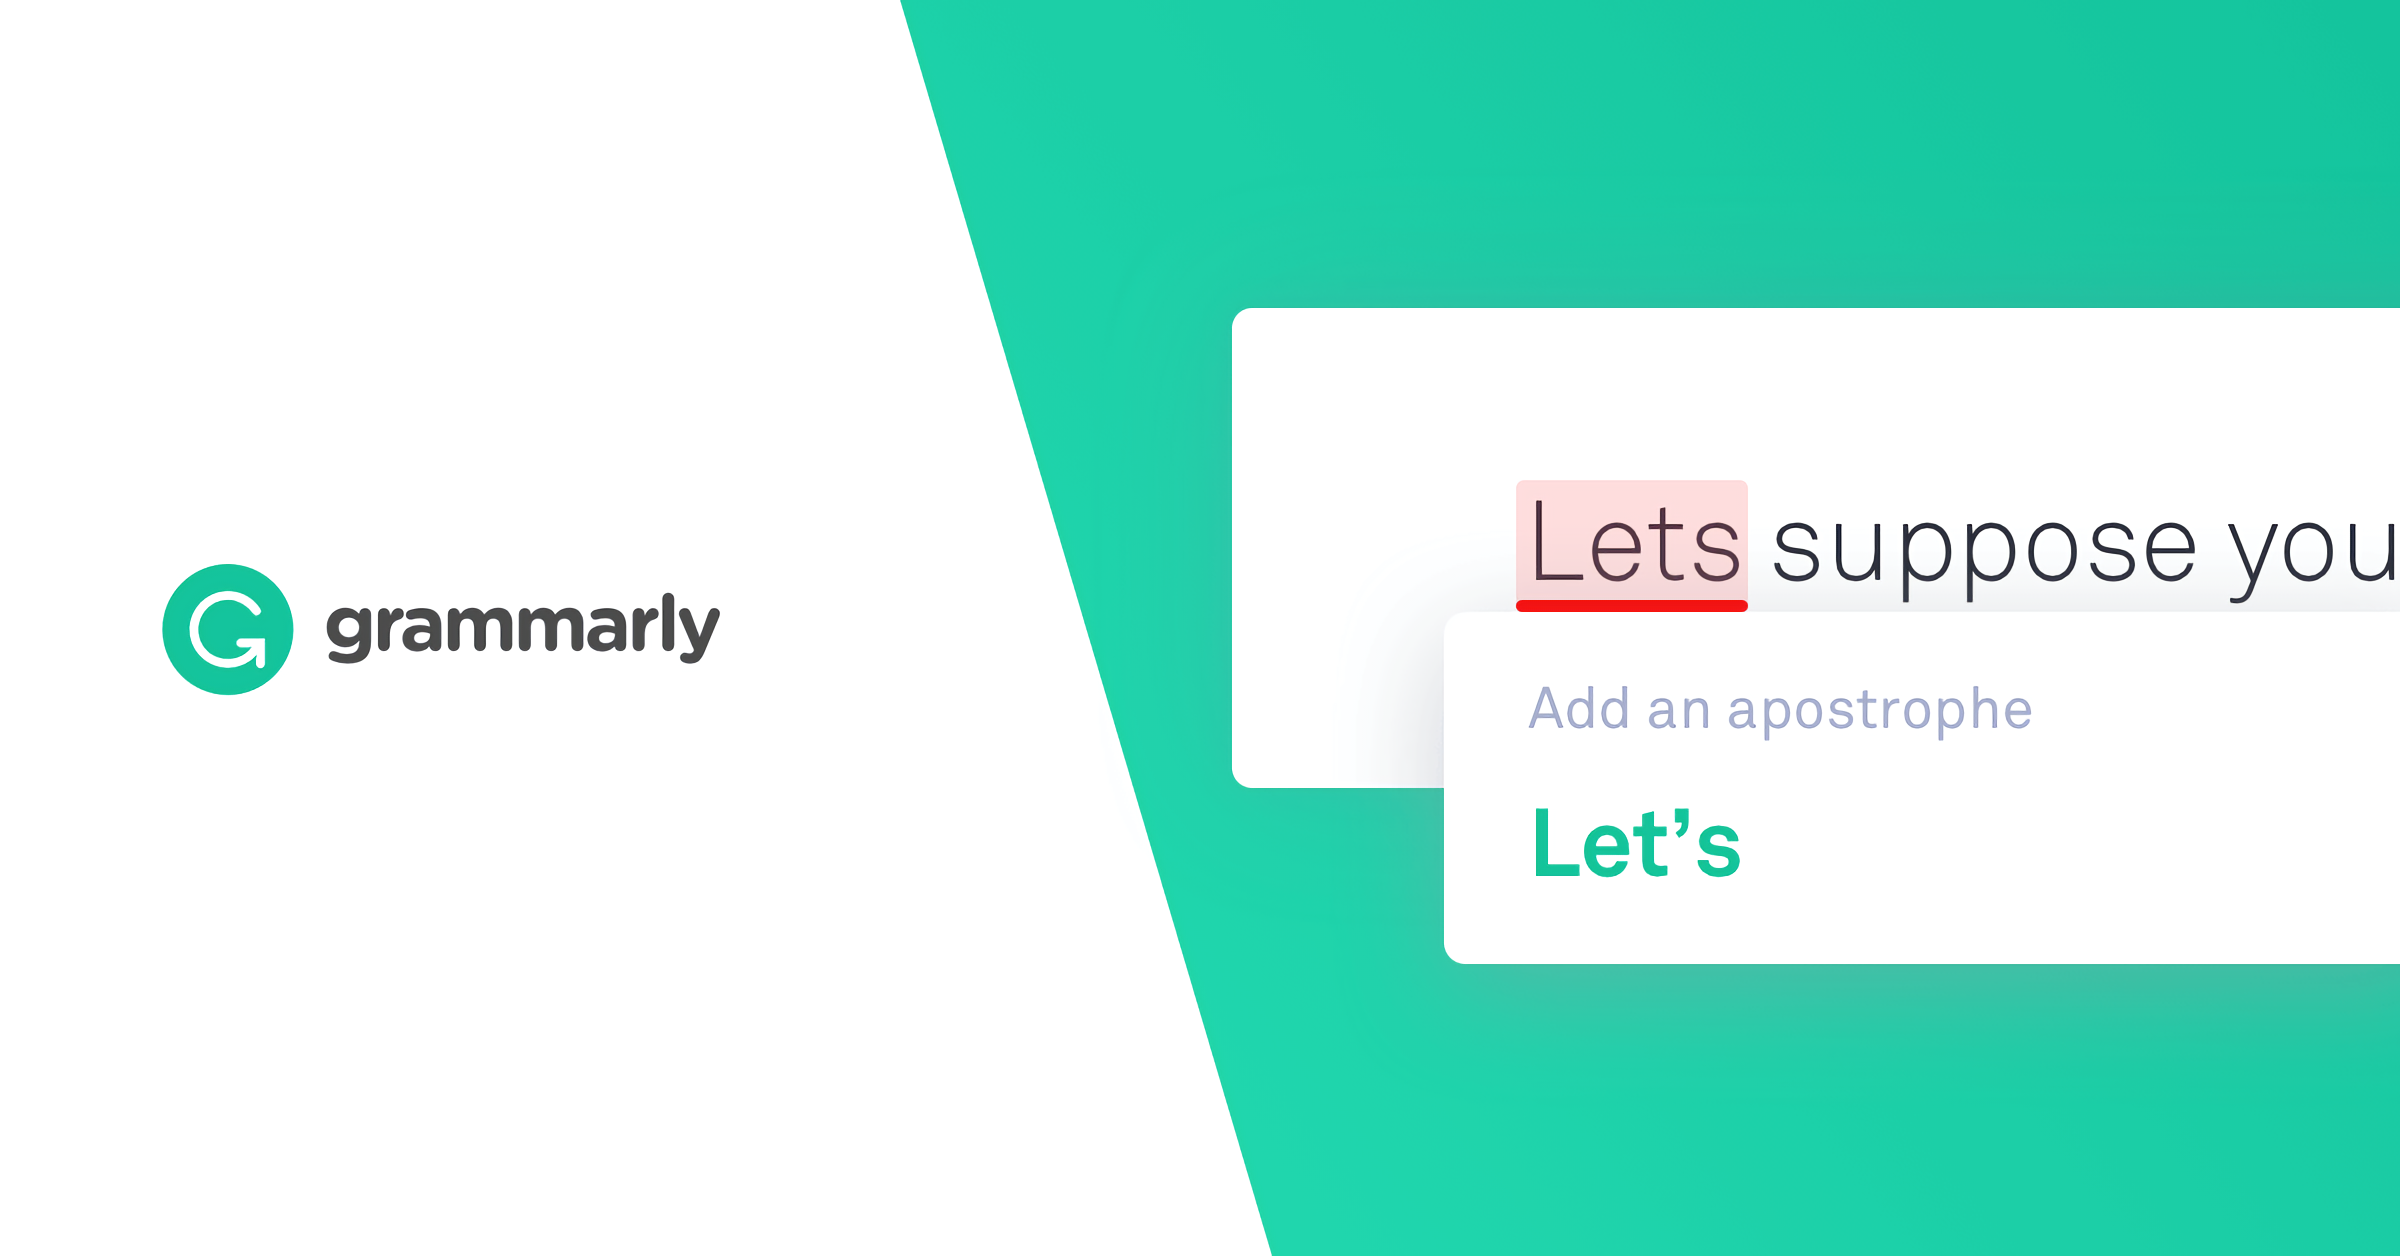 Grammarly brings its AI-powered proofreading tools to Google